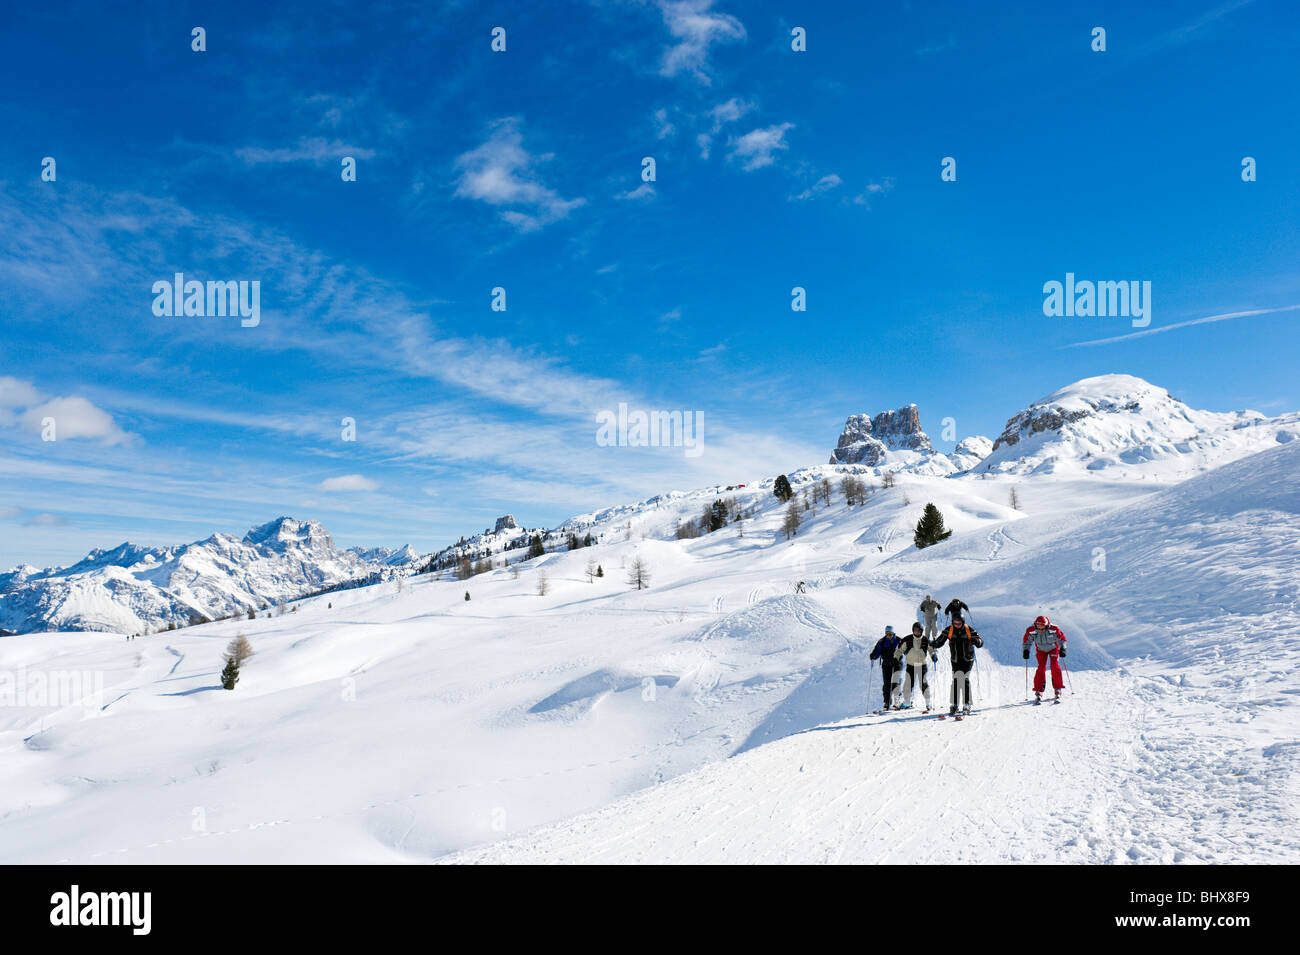 Skiers on the slopes at the Passo di Falzarego between Andraz and Cortina d'Ampezzo, Dolomites, Italy - Stock Image